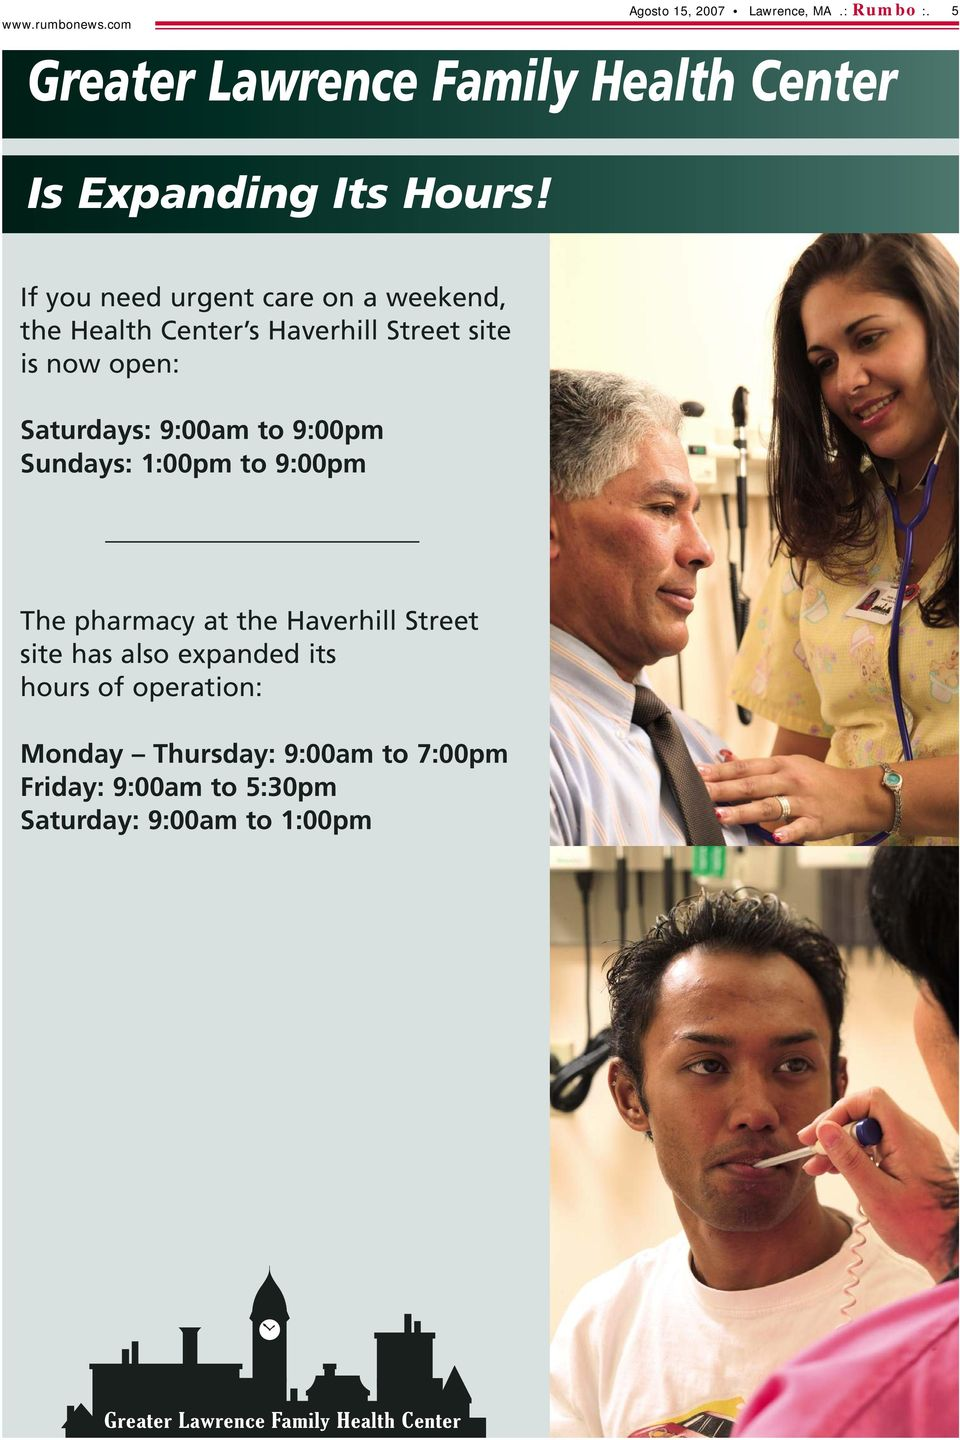 If you need urgent care on a weekend, the Health Center s Haverhill Street site is now open: Saturdays: 9:00am to